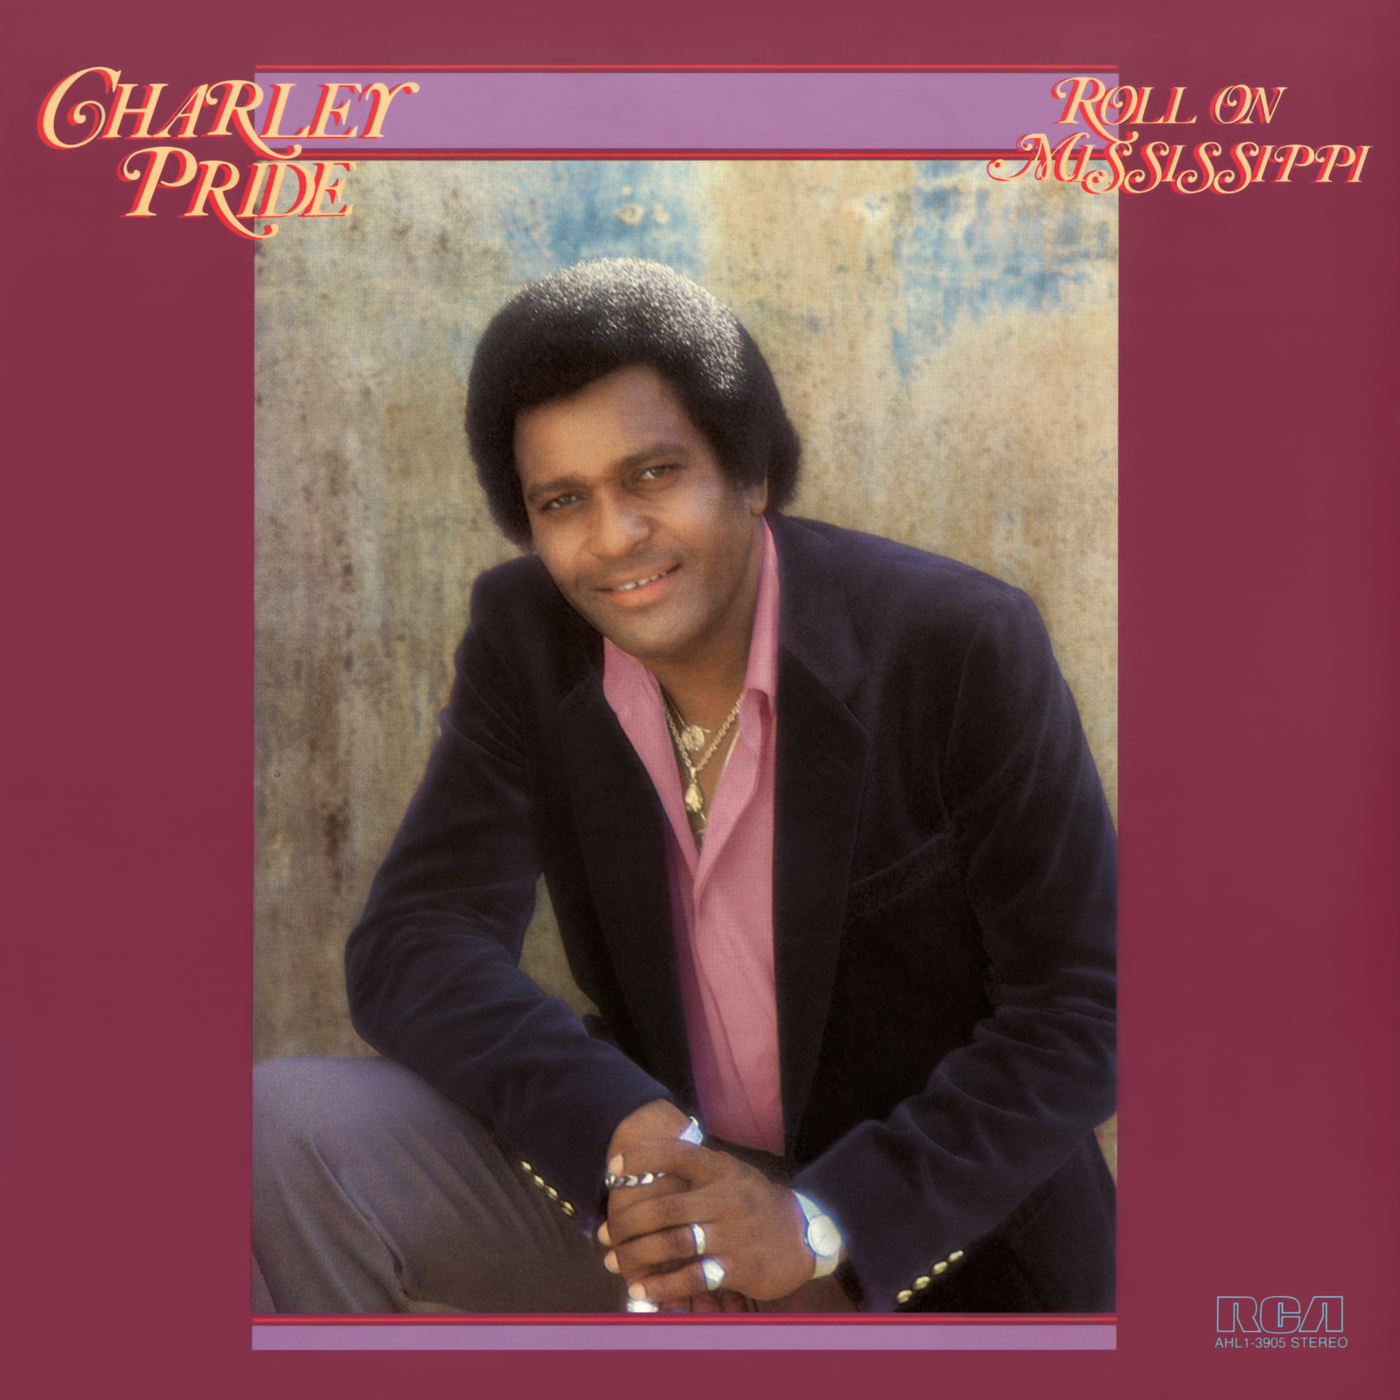 Roll On Mississippi - Charley Pride